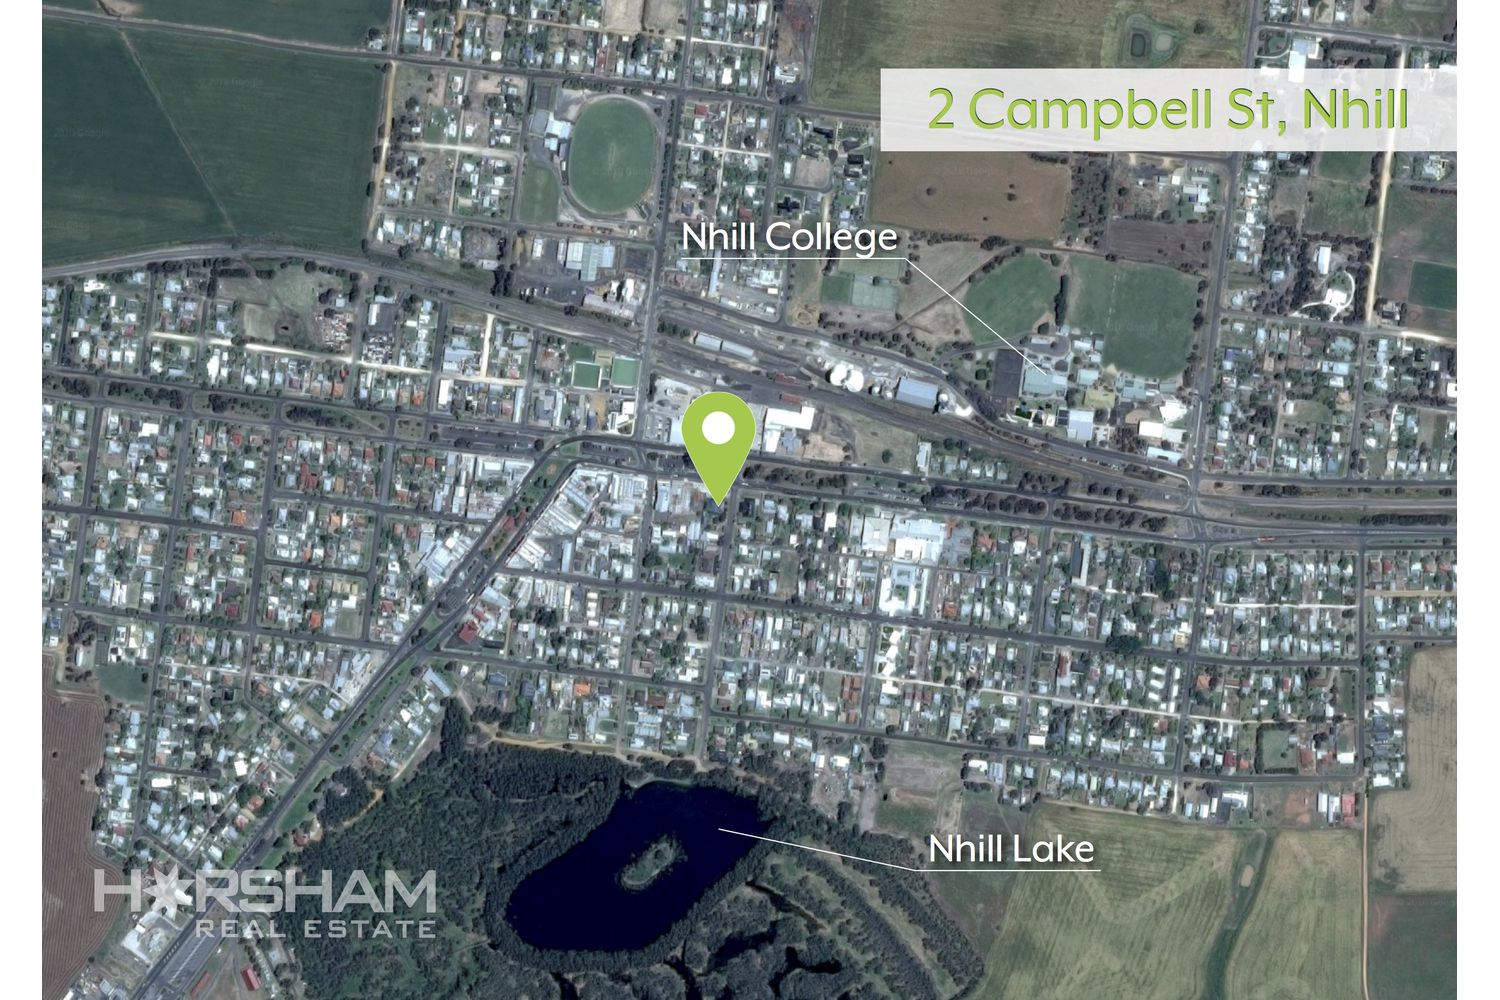 2 Campbell Street, Nhill